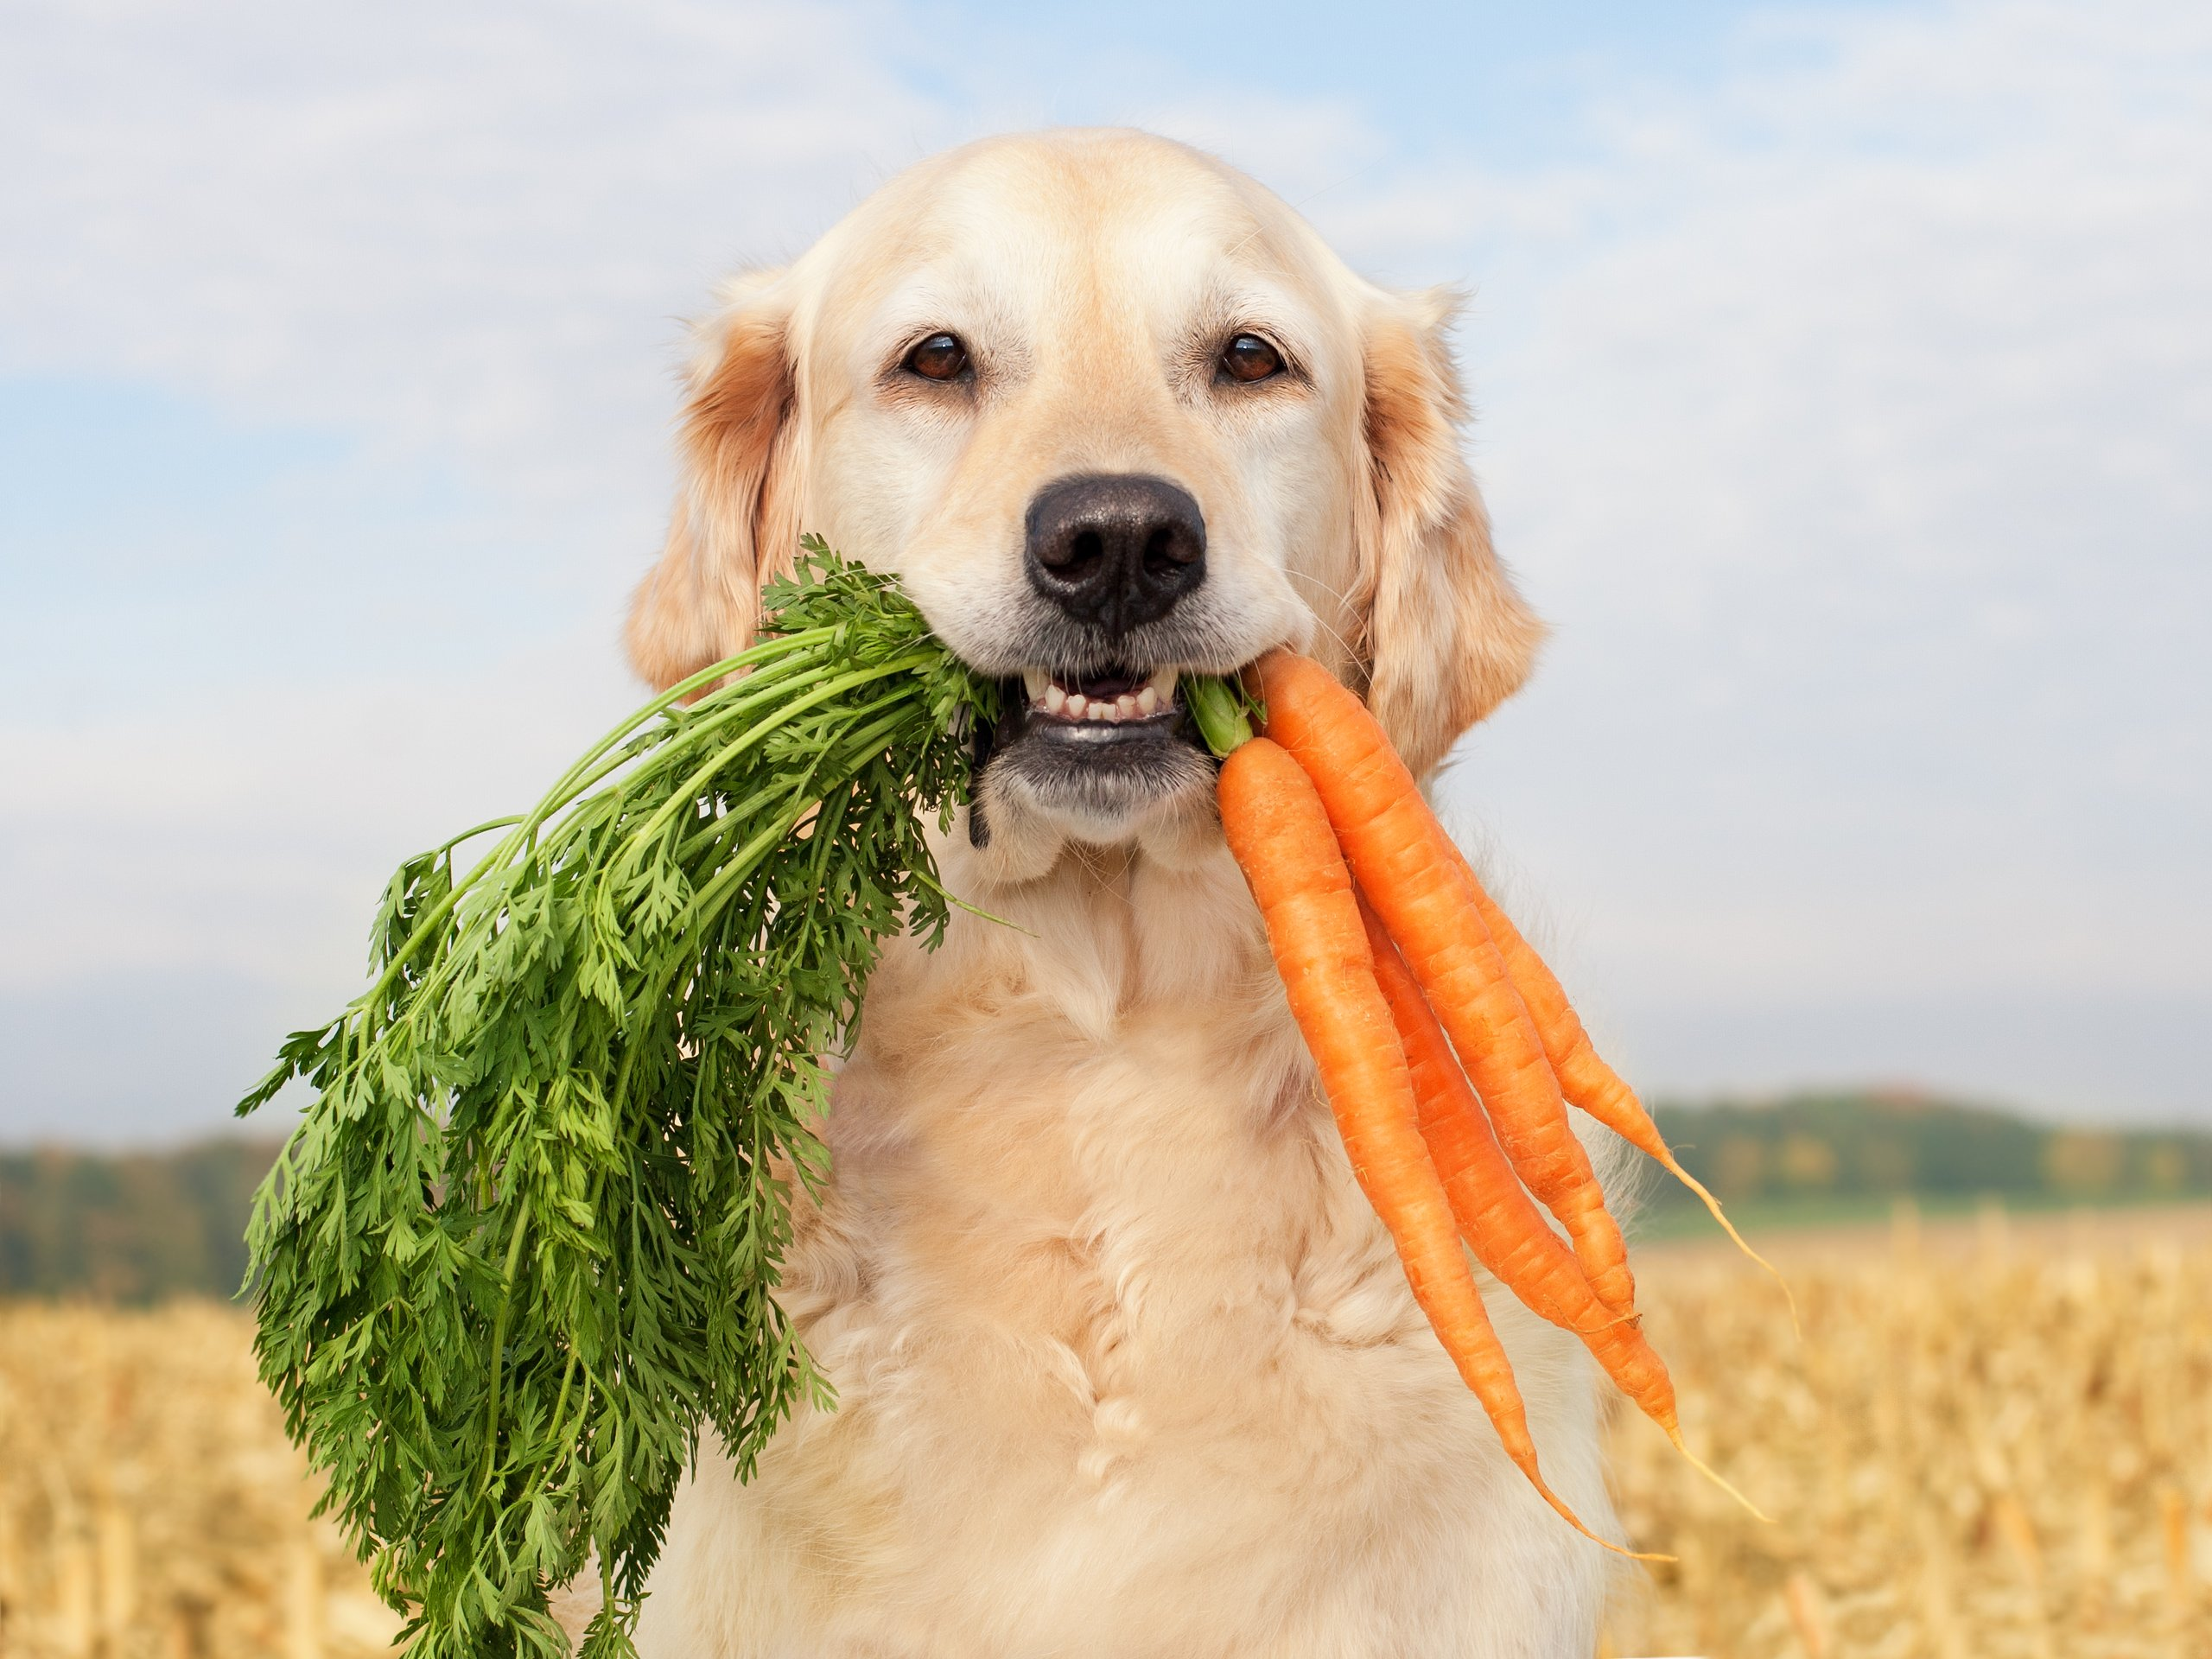 Golden retriever with a mouth full of carrots